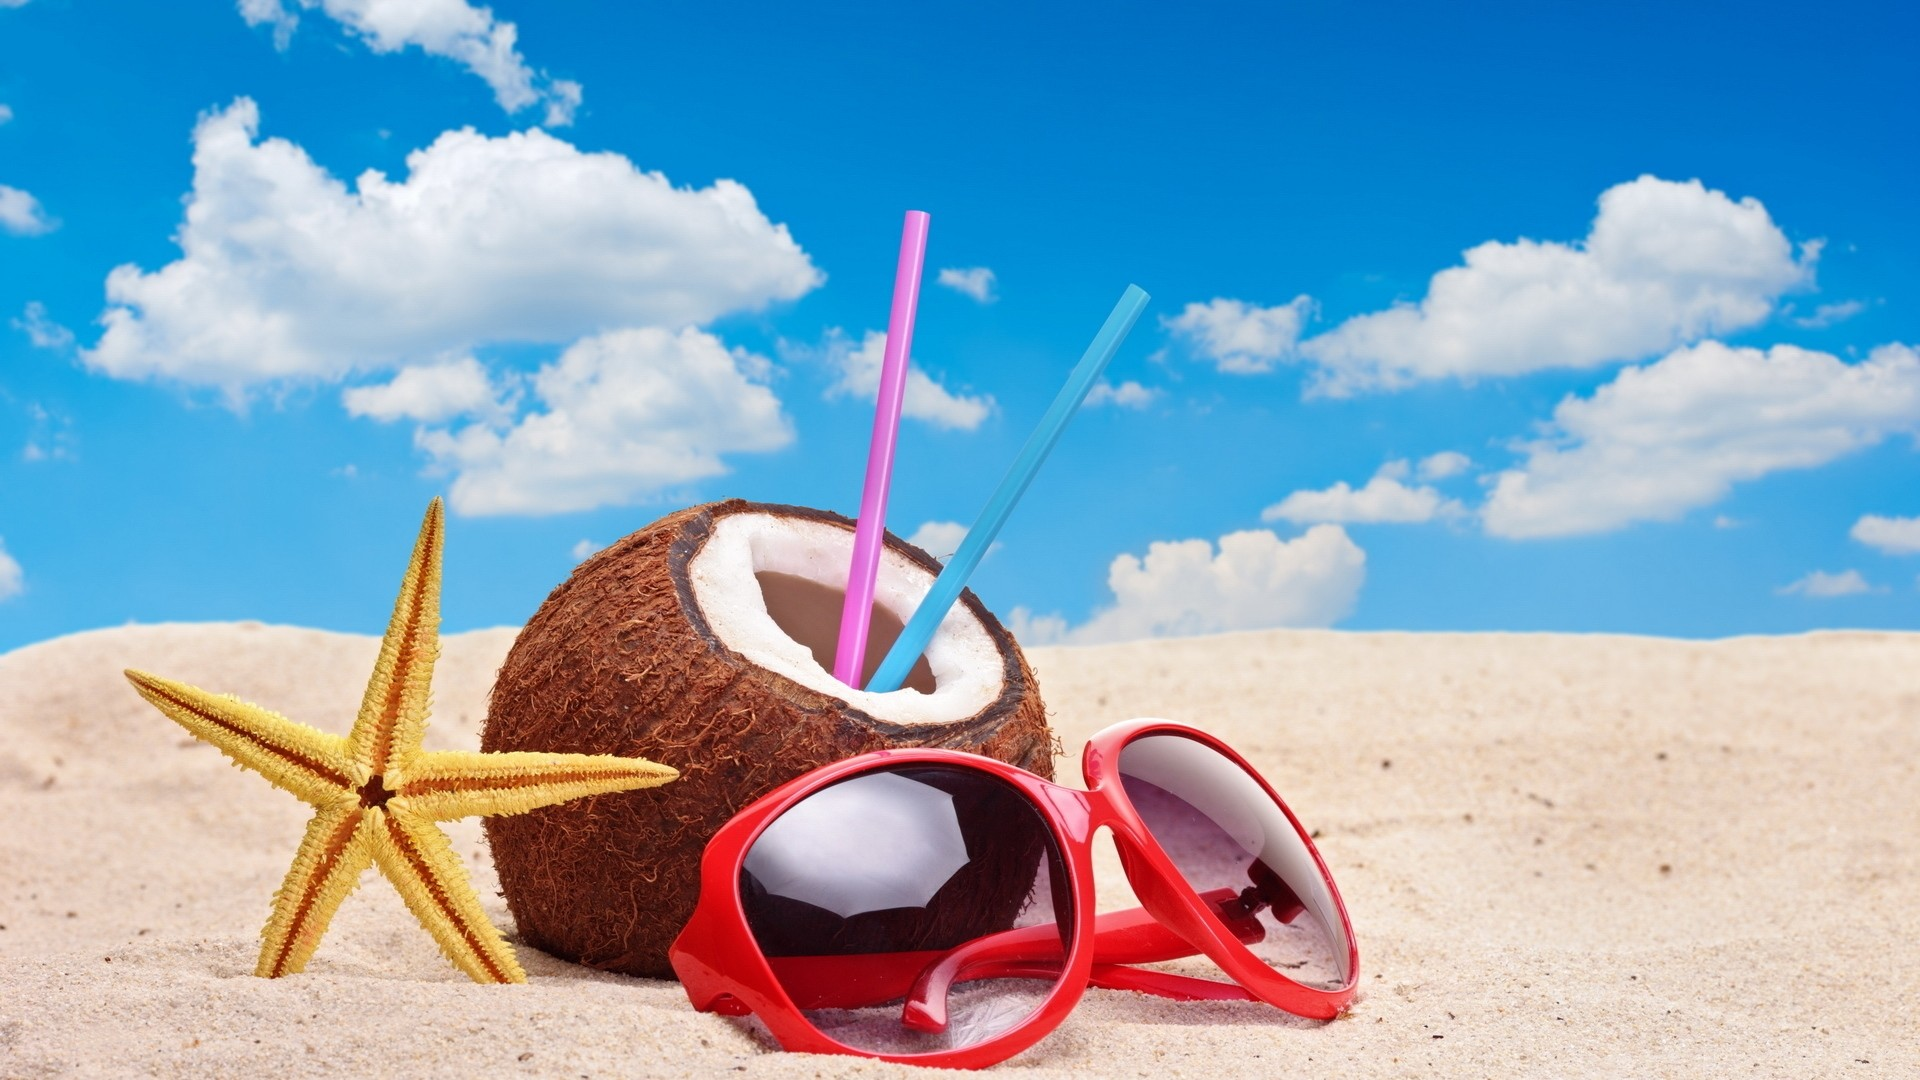 Cool Summer Backgrounds 57 Images